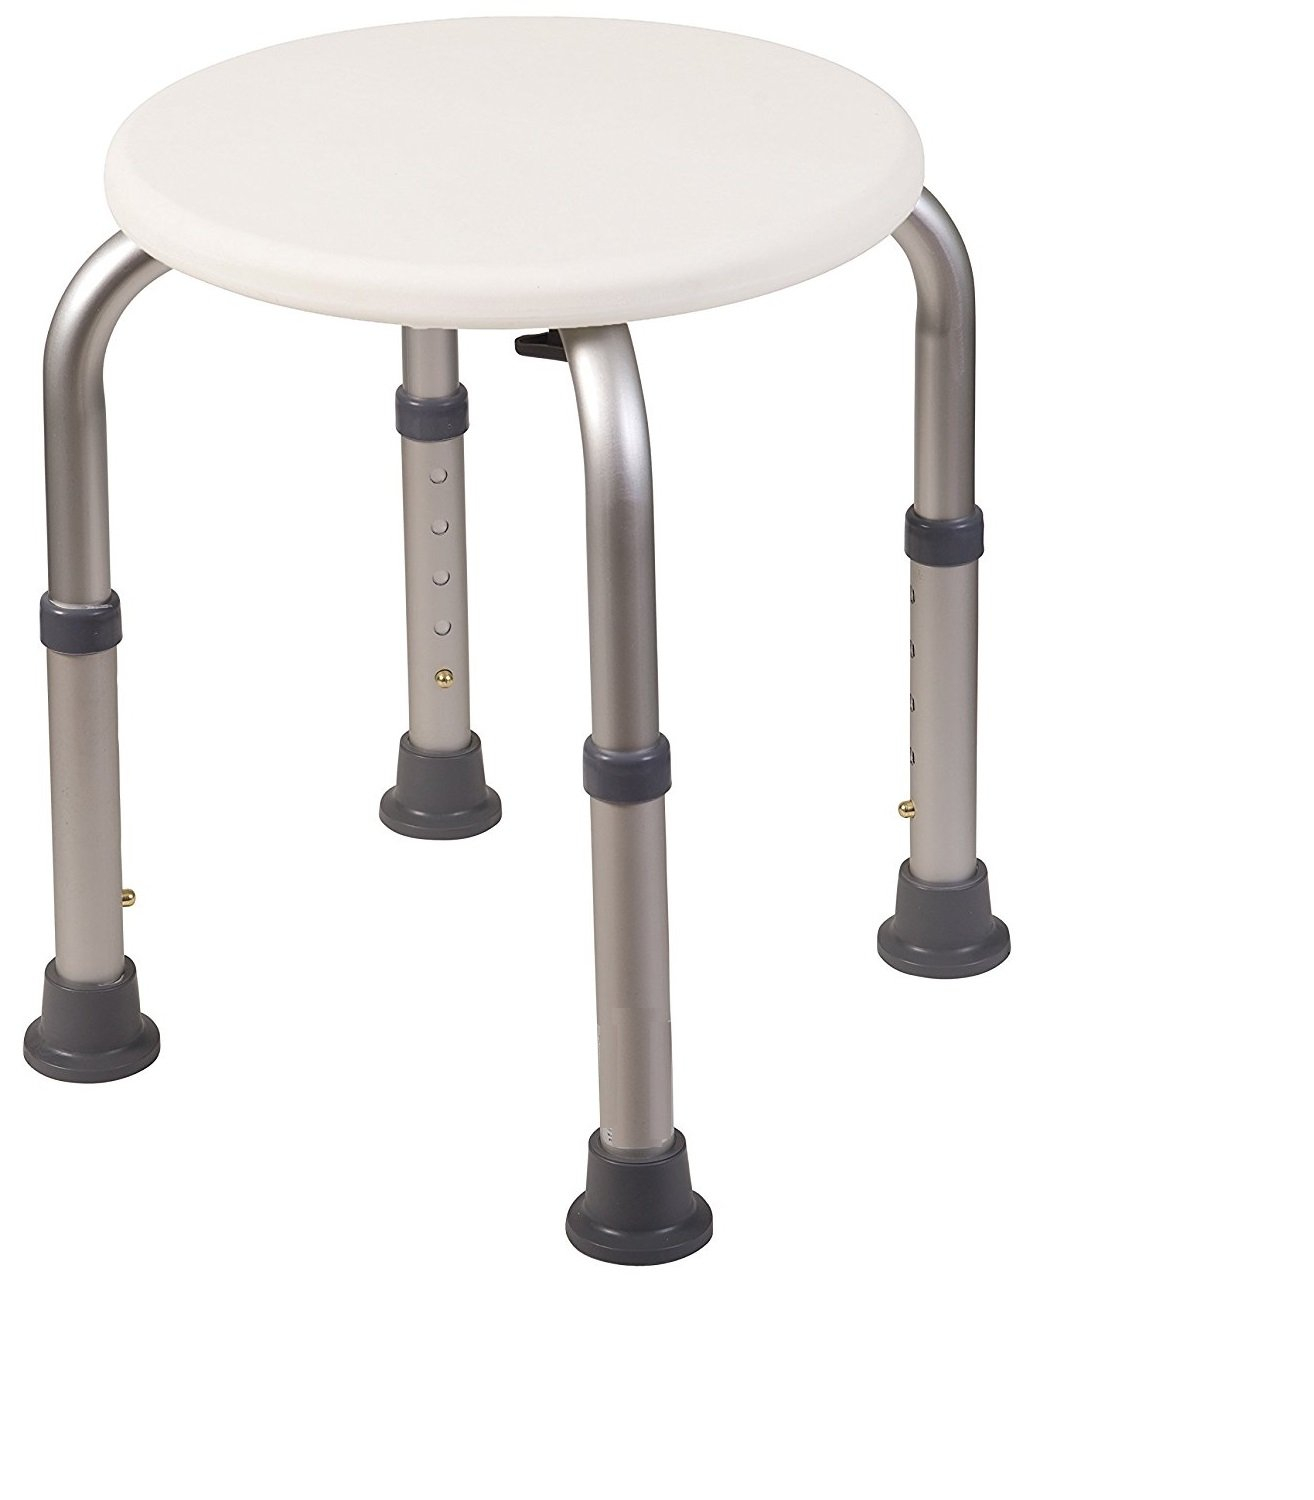 Healthline Trading Round Stool Bath Bench Adjustable Height, Lightweight Compact and Small Chair for Shower, with Non-Slip Seat, White by Healthline Trading